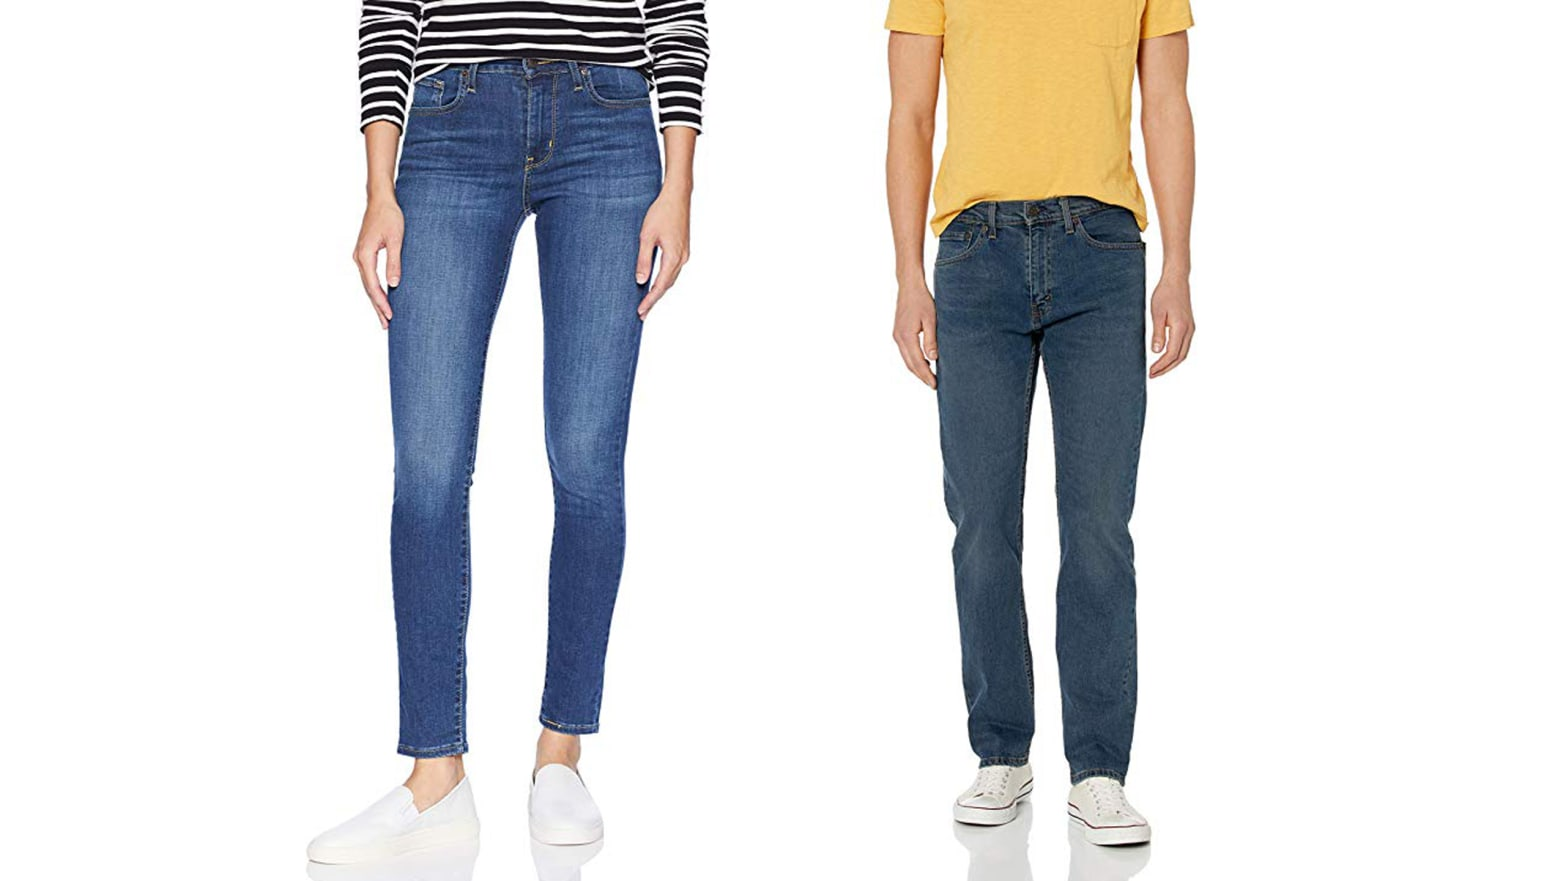 Shop the Amazon Sale on Levi's